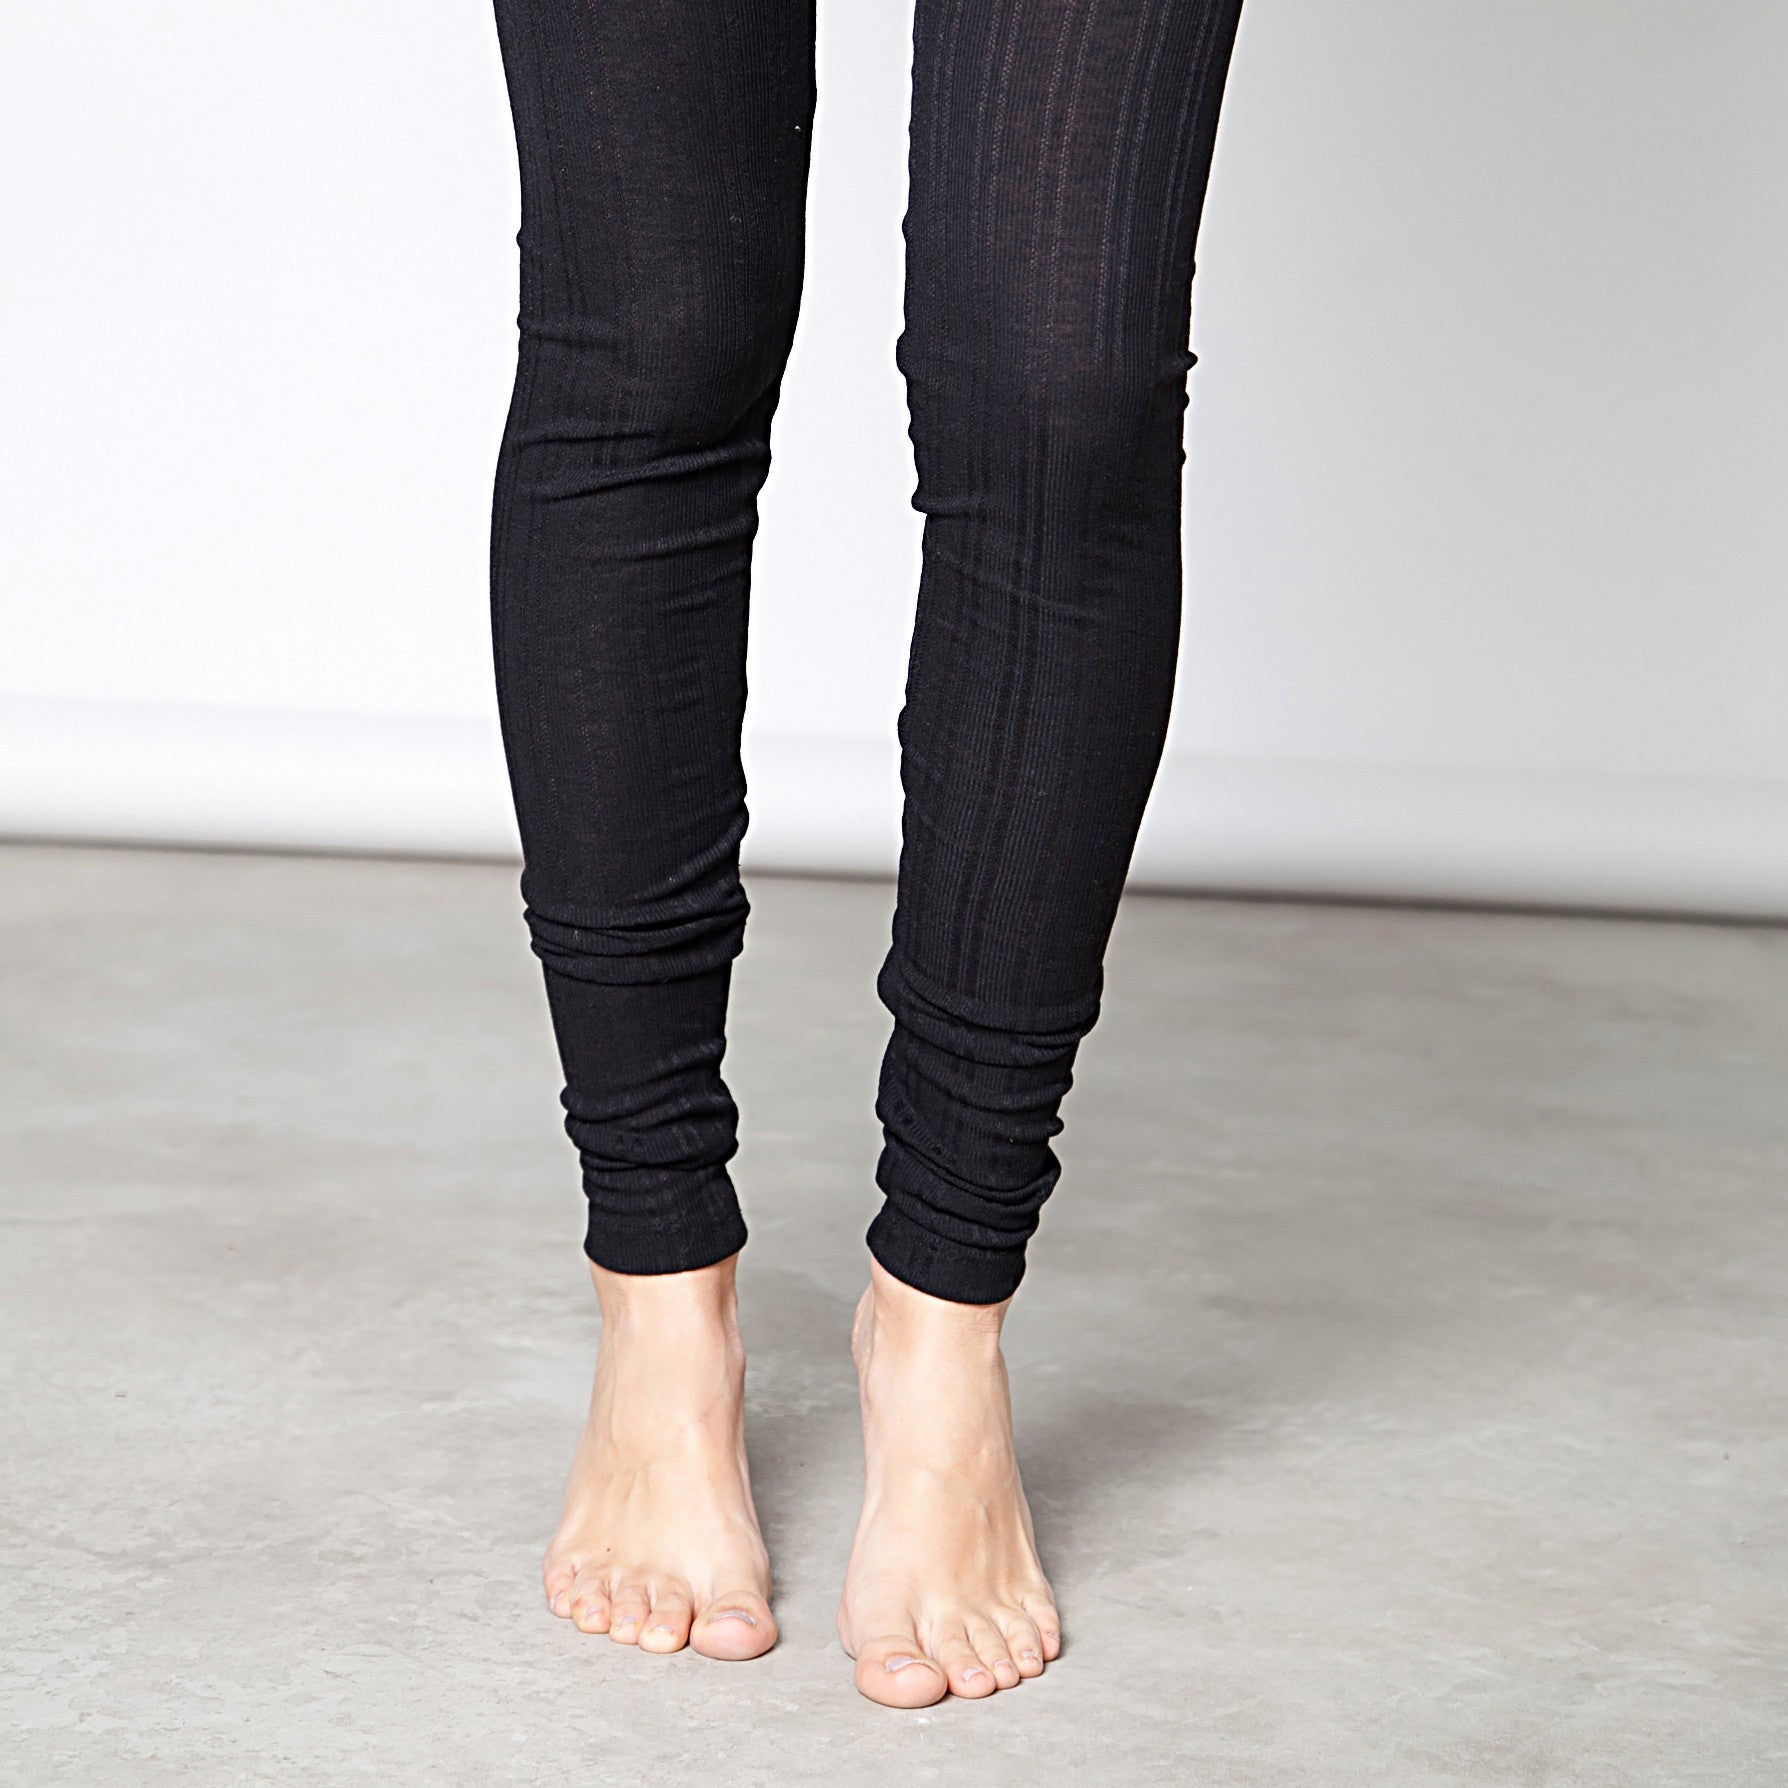 Cotton pointelle knit leggings - DuendeFashion  - 2